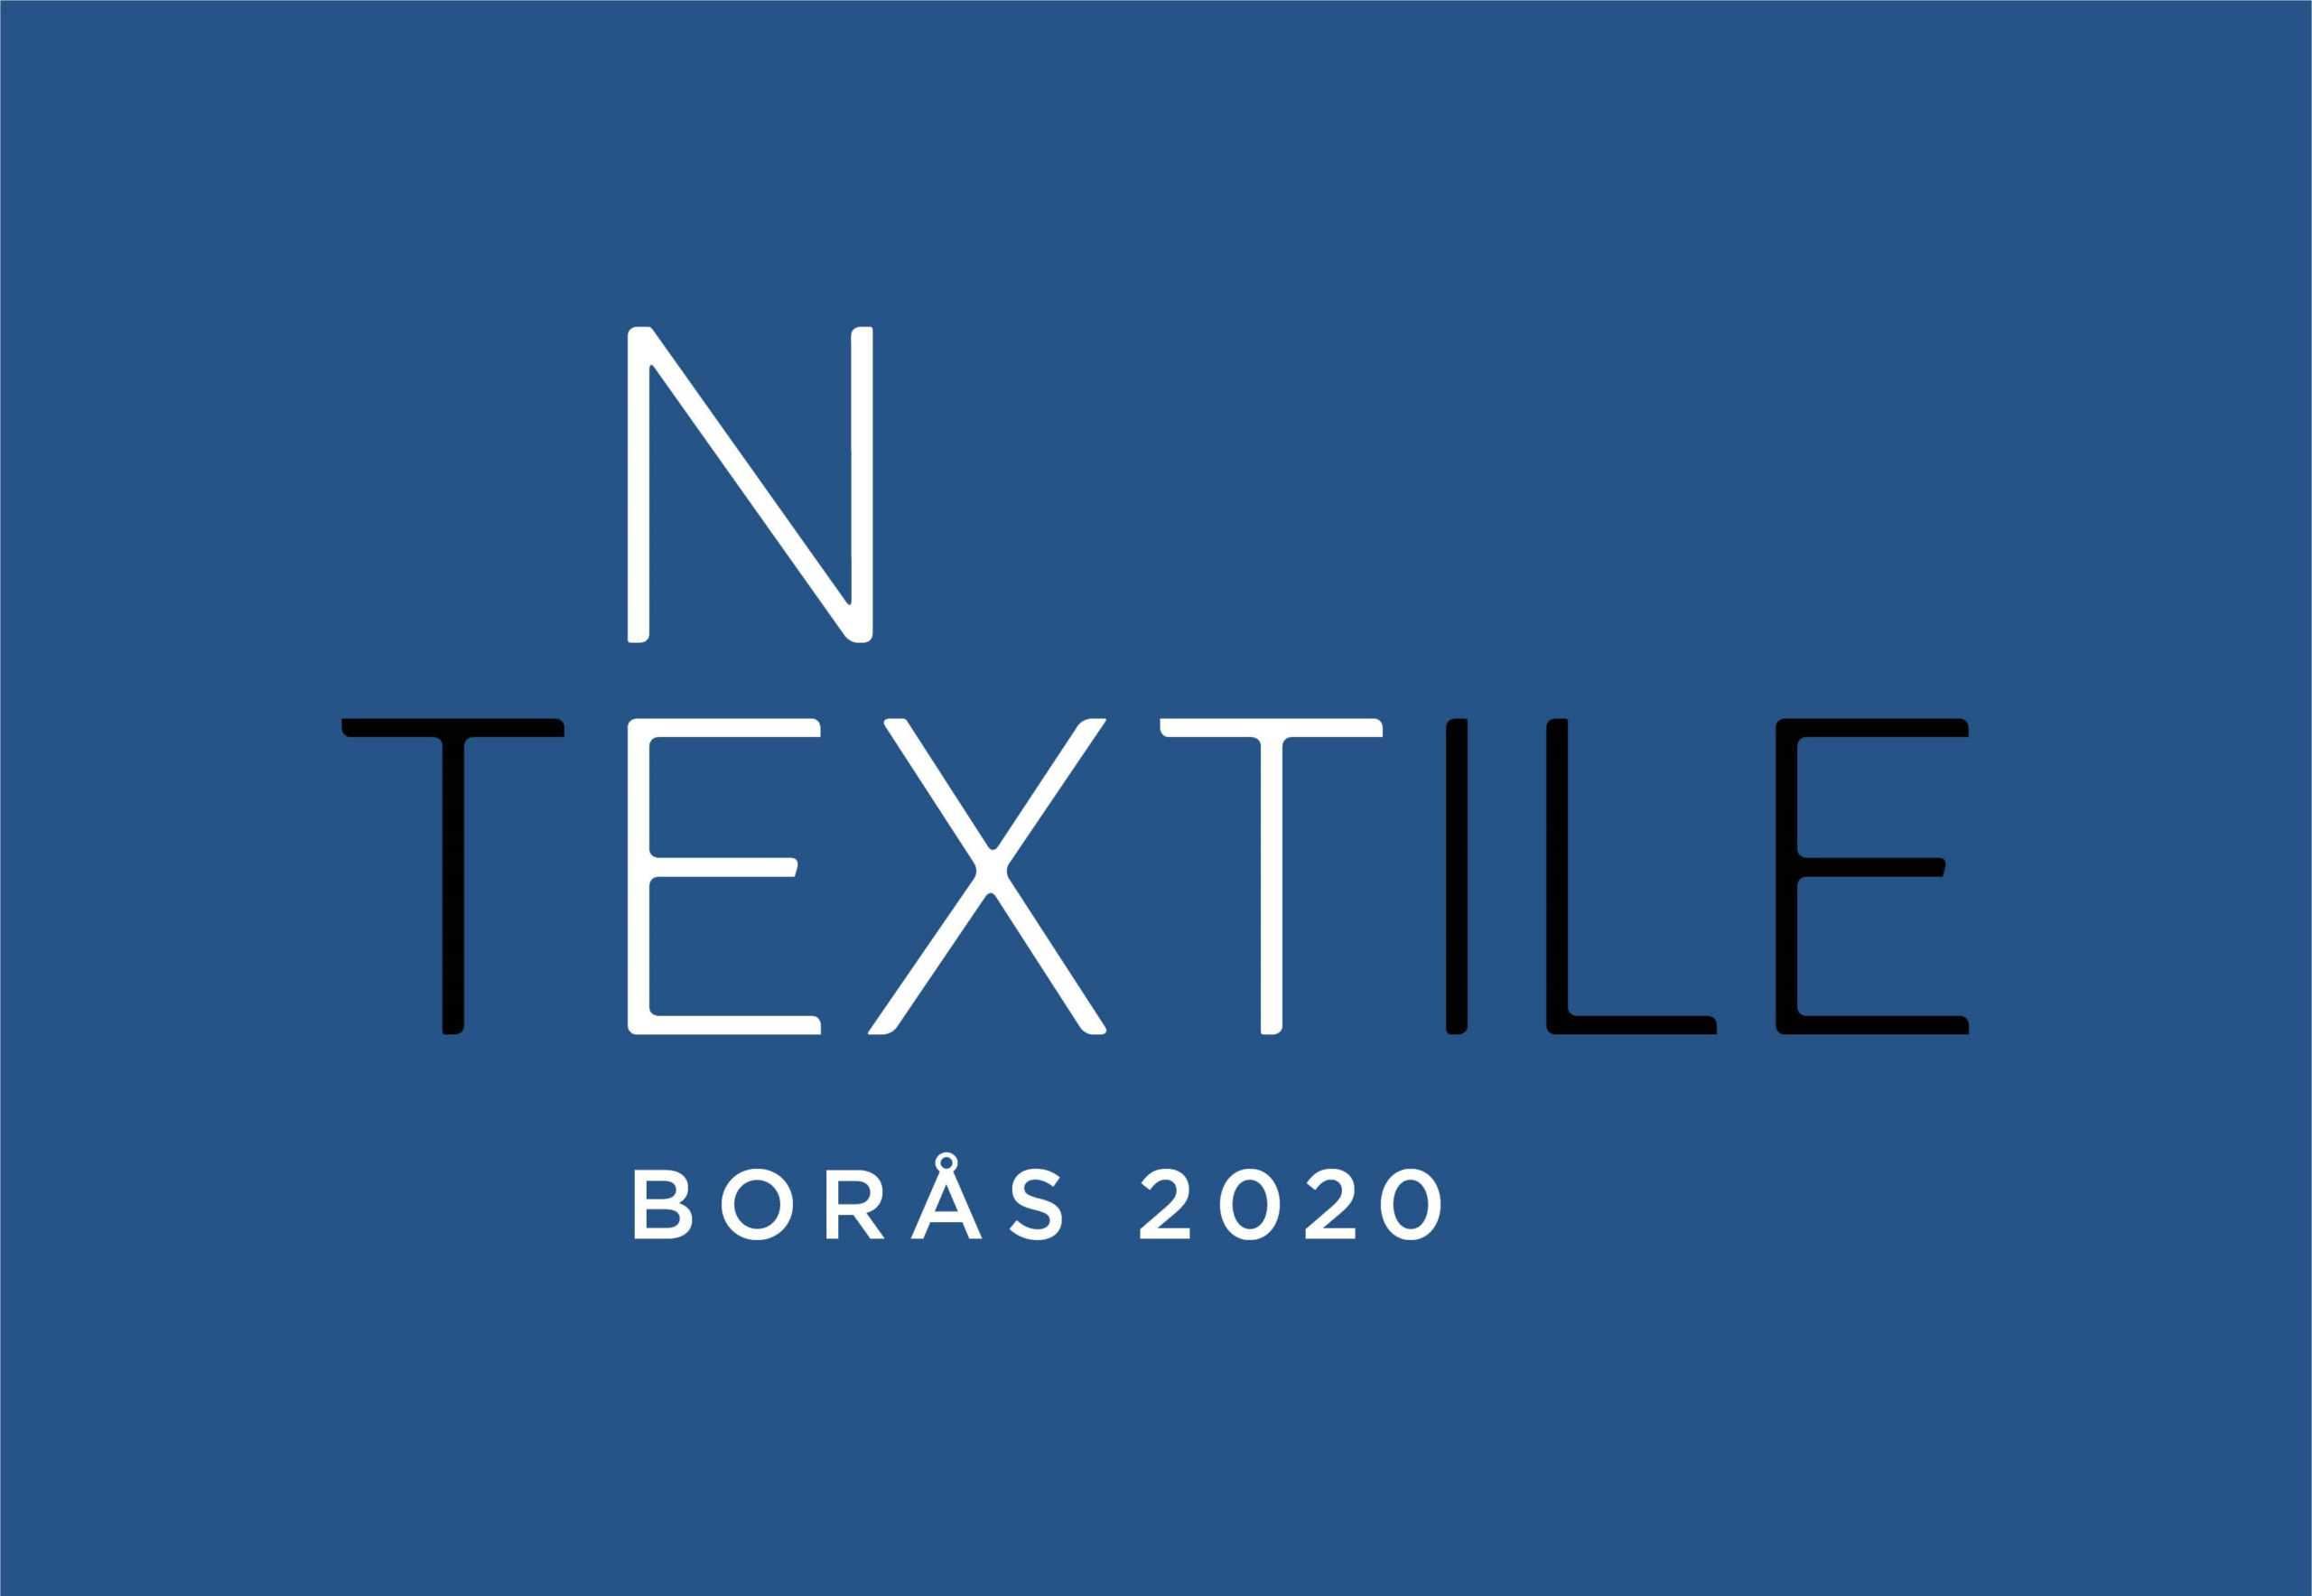 NEXT TEXTILE 2020: October 22, 2020.Save the date!